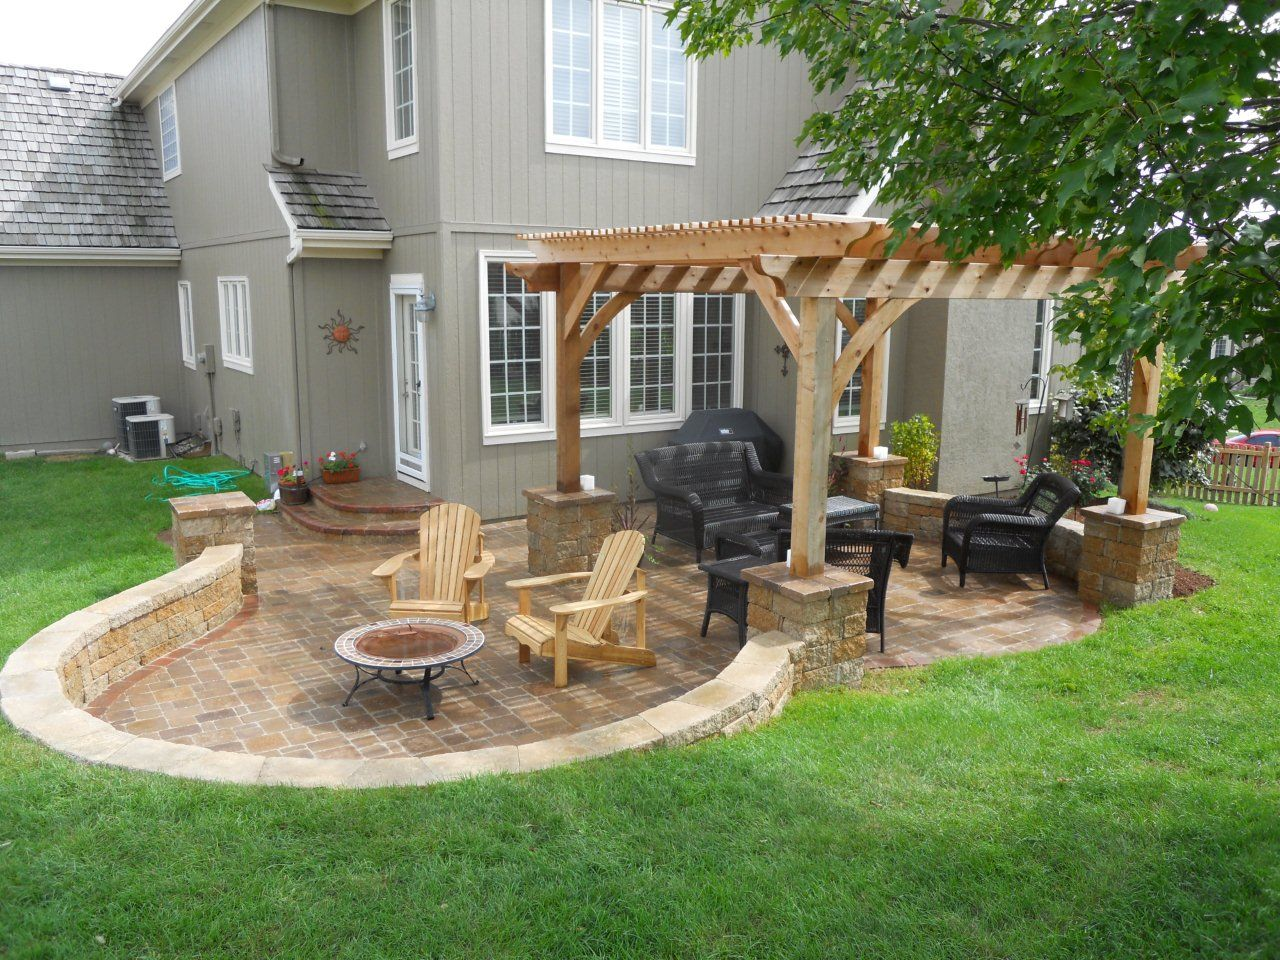 Backyard patio ideas - Best 20 Backyard Patio Ideas On Pinterest Backyard Makeover Back Yard And Cheap Paddling Pool